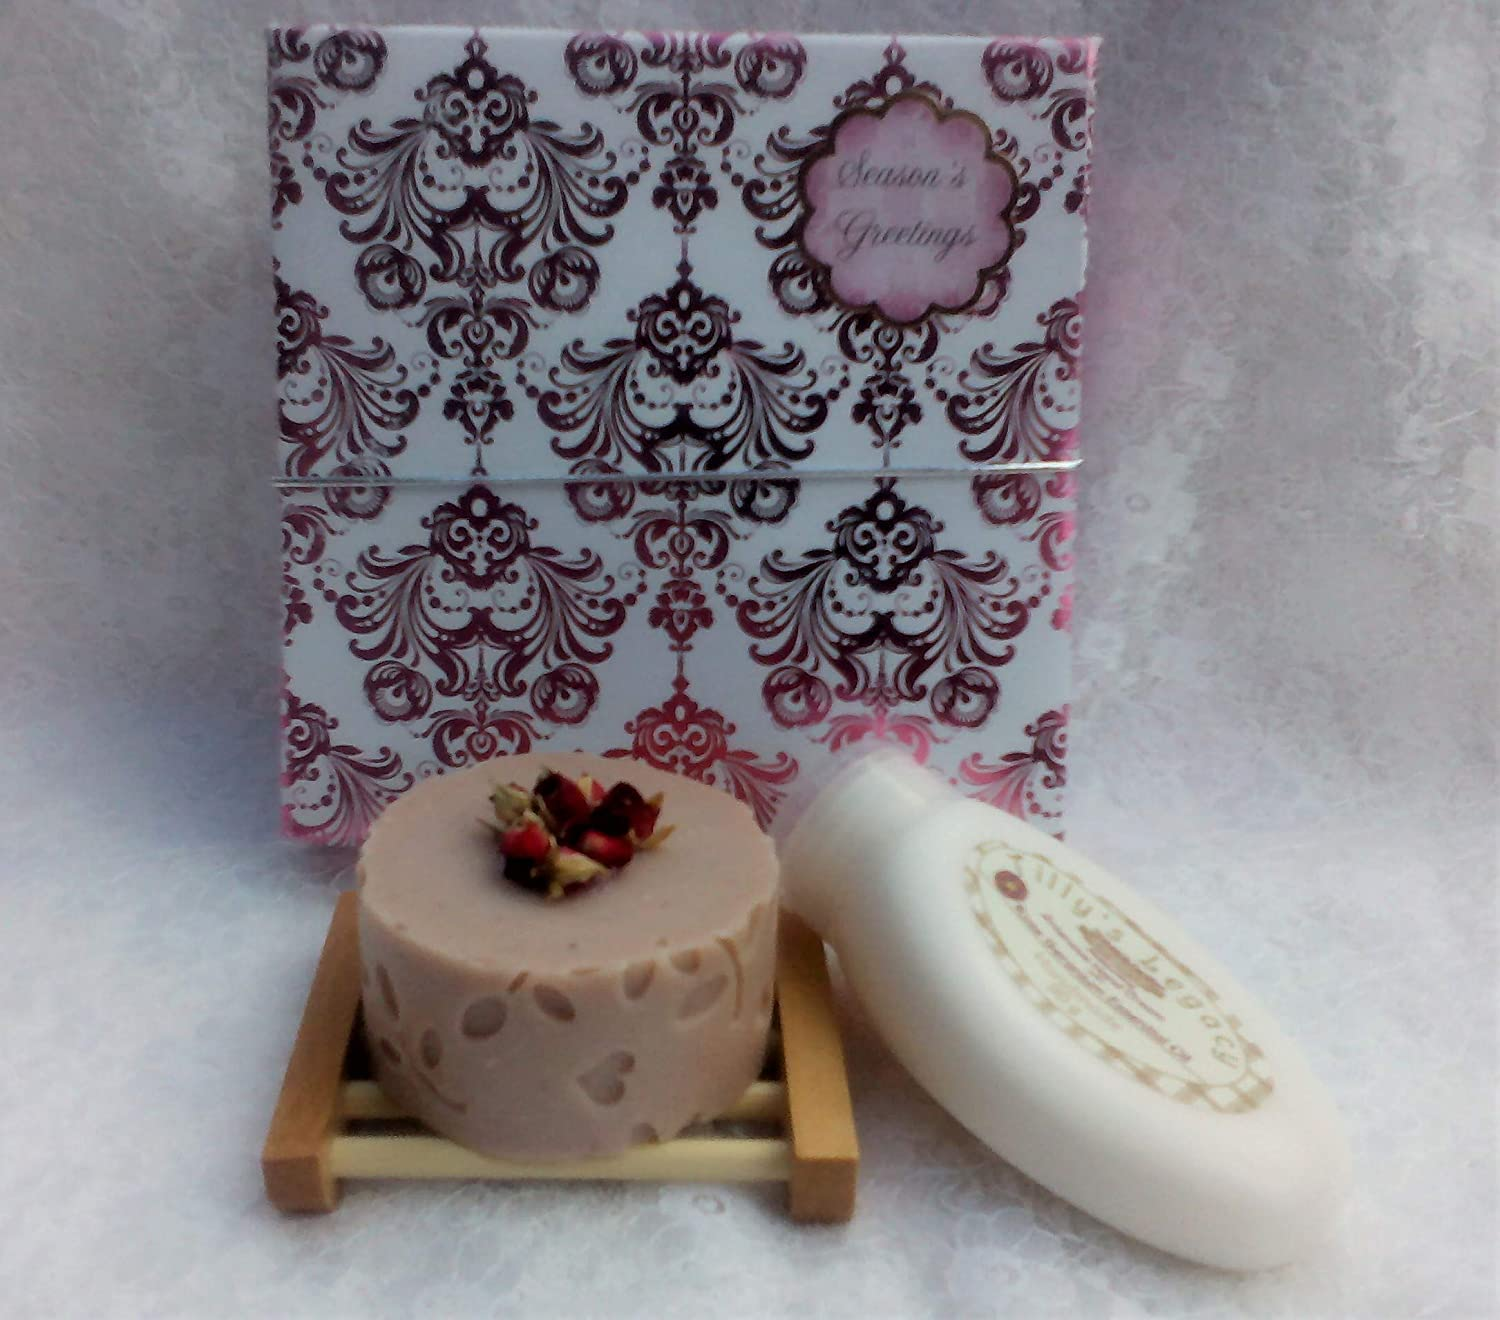 Tilly's Legacy. Petals Essential Oil Soap Gift Box. Olive & Hempseed Oil Soap, Organic Egyptian Rose Geranium Hand Cream and a Bamboo Mini Soap Dish. Vegan.